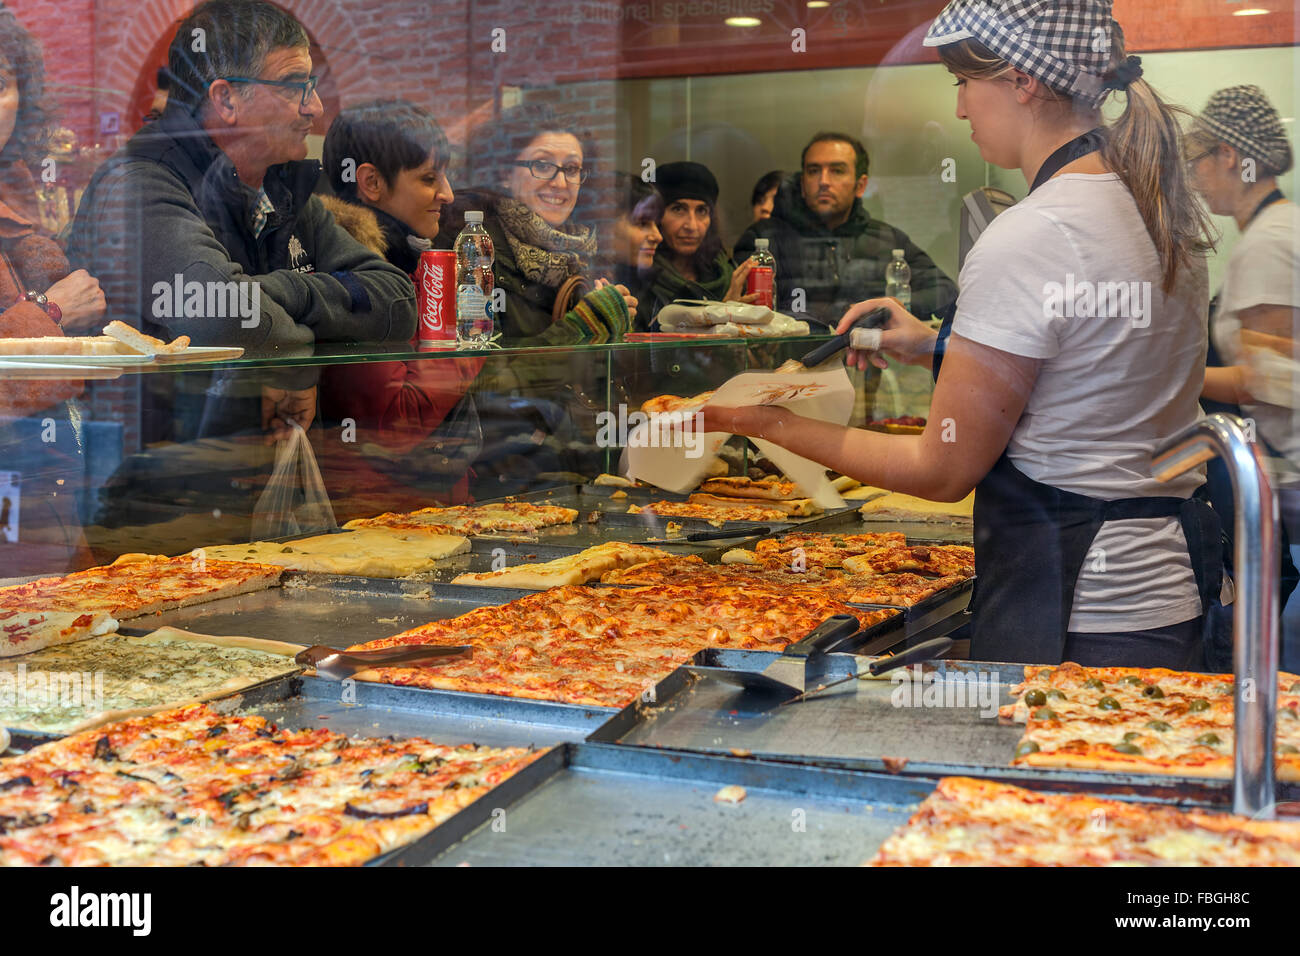 People inside typical pizzeria buying pizza in Alba, Italy. - Stock Image